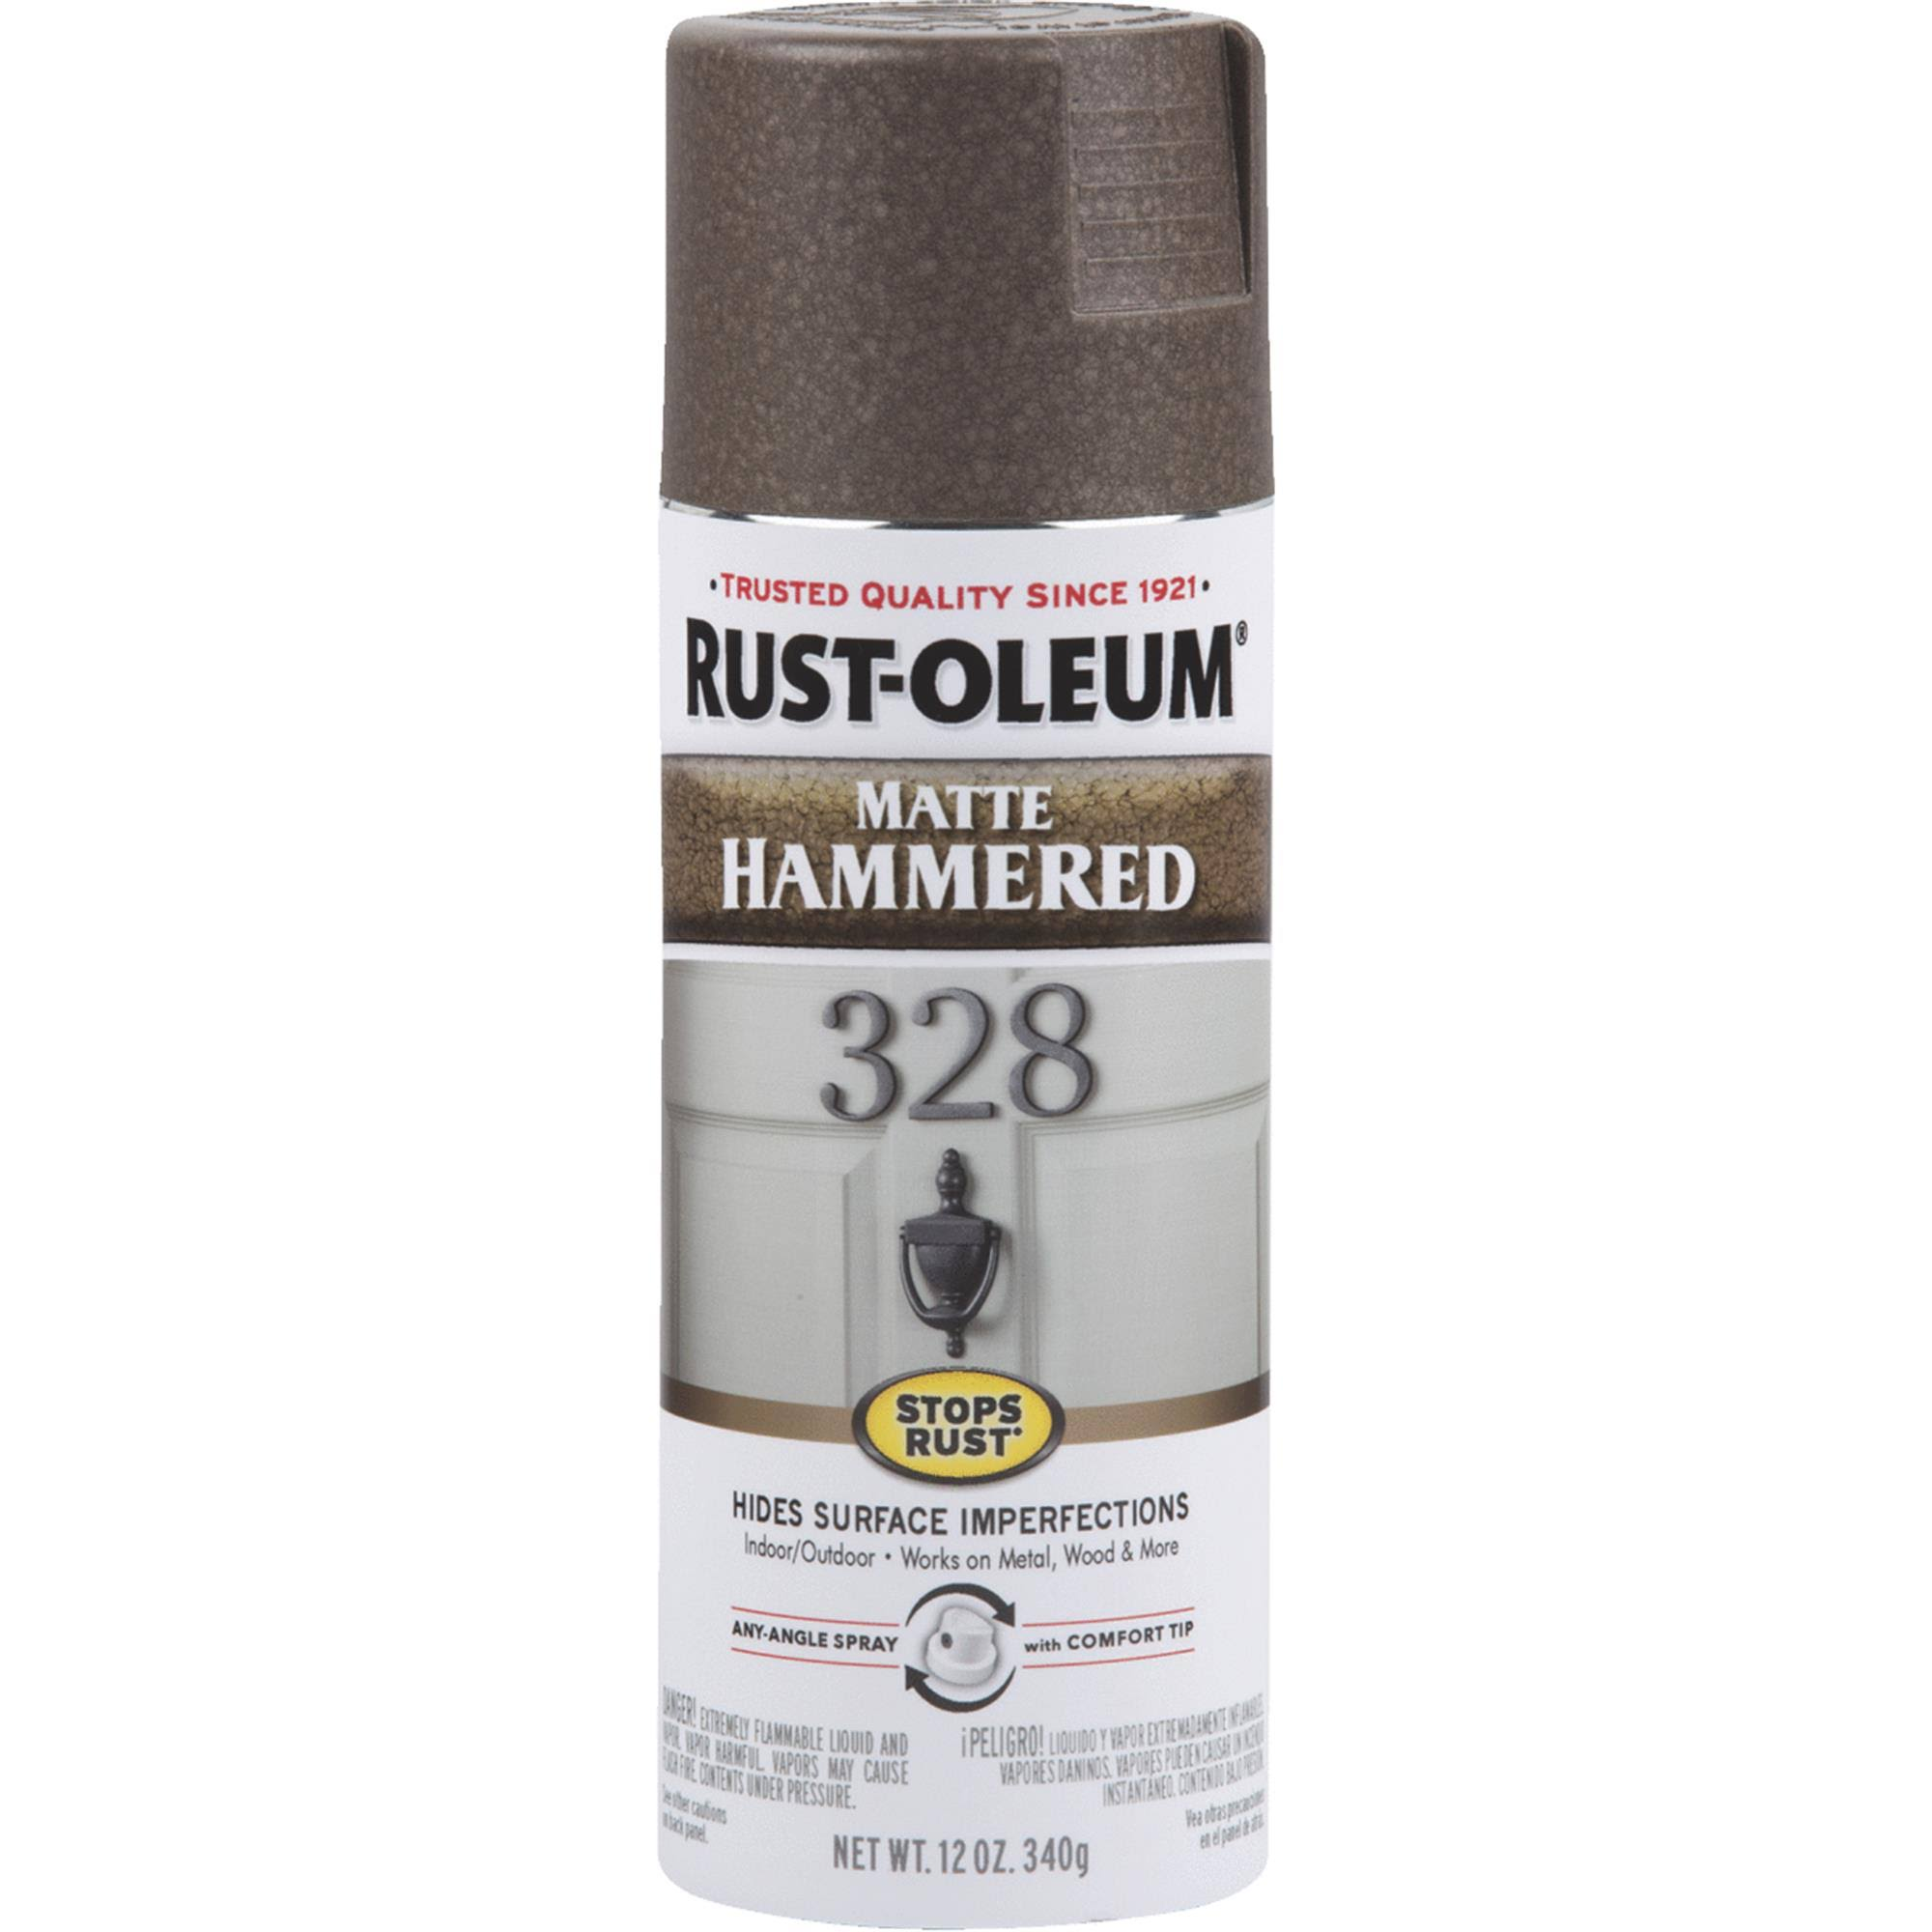 Rust-Oleum Hammered Matte Brown Spray Paint 12 oz.